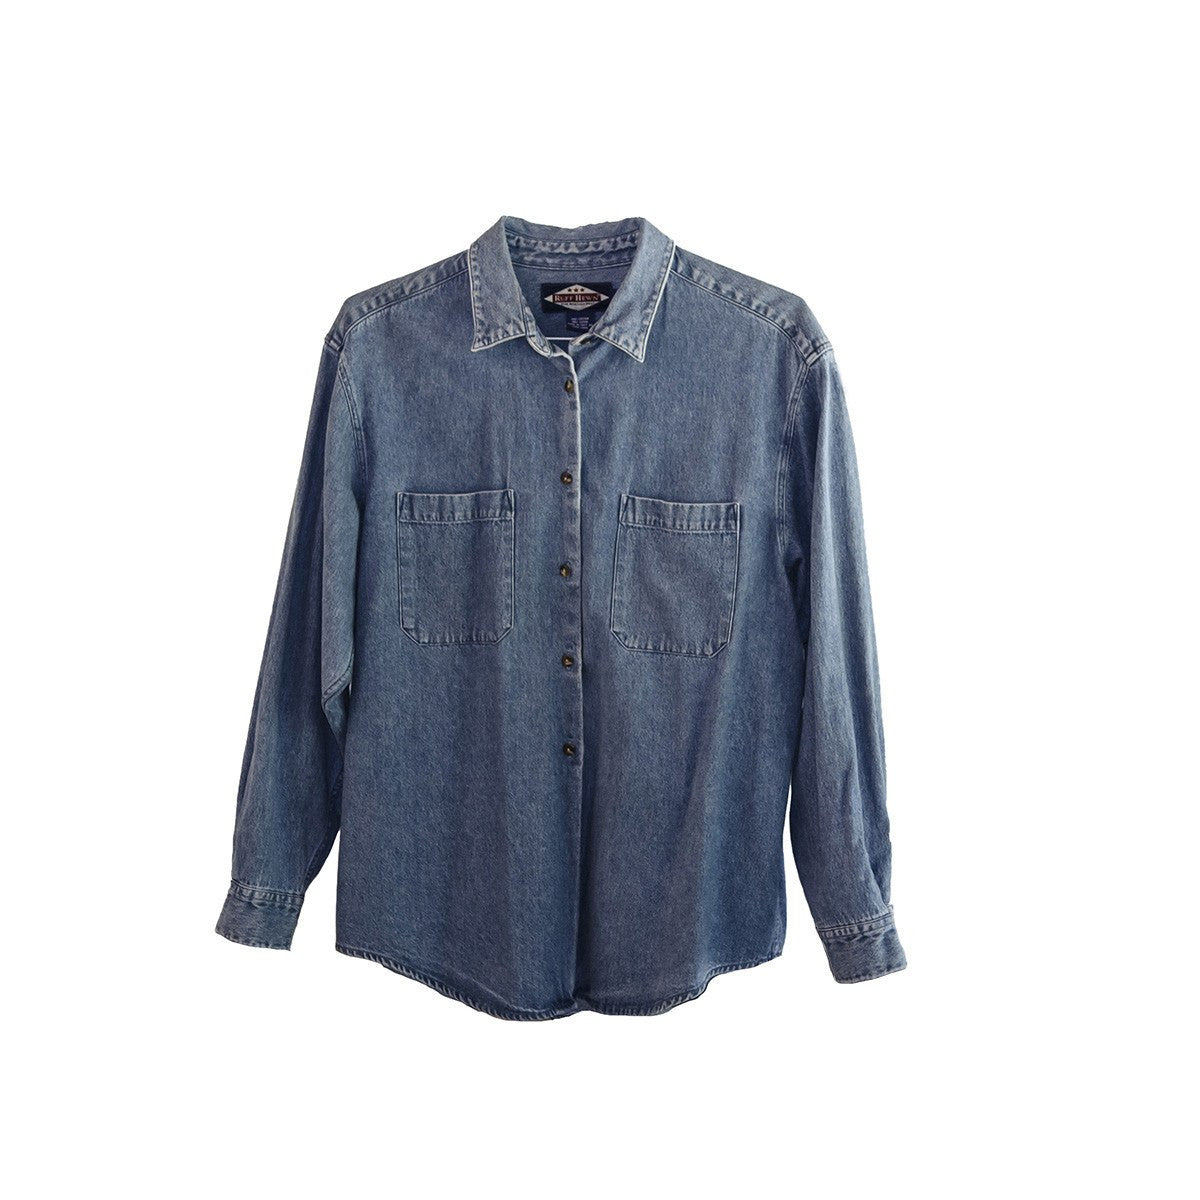 Vintage Denim Shirt, Size Large, Medium Wash